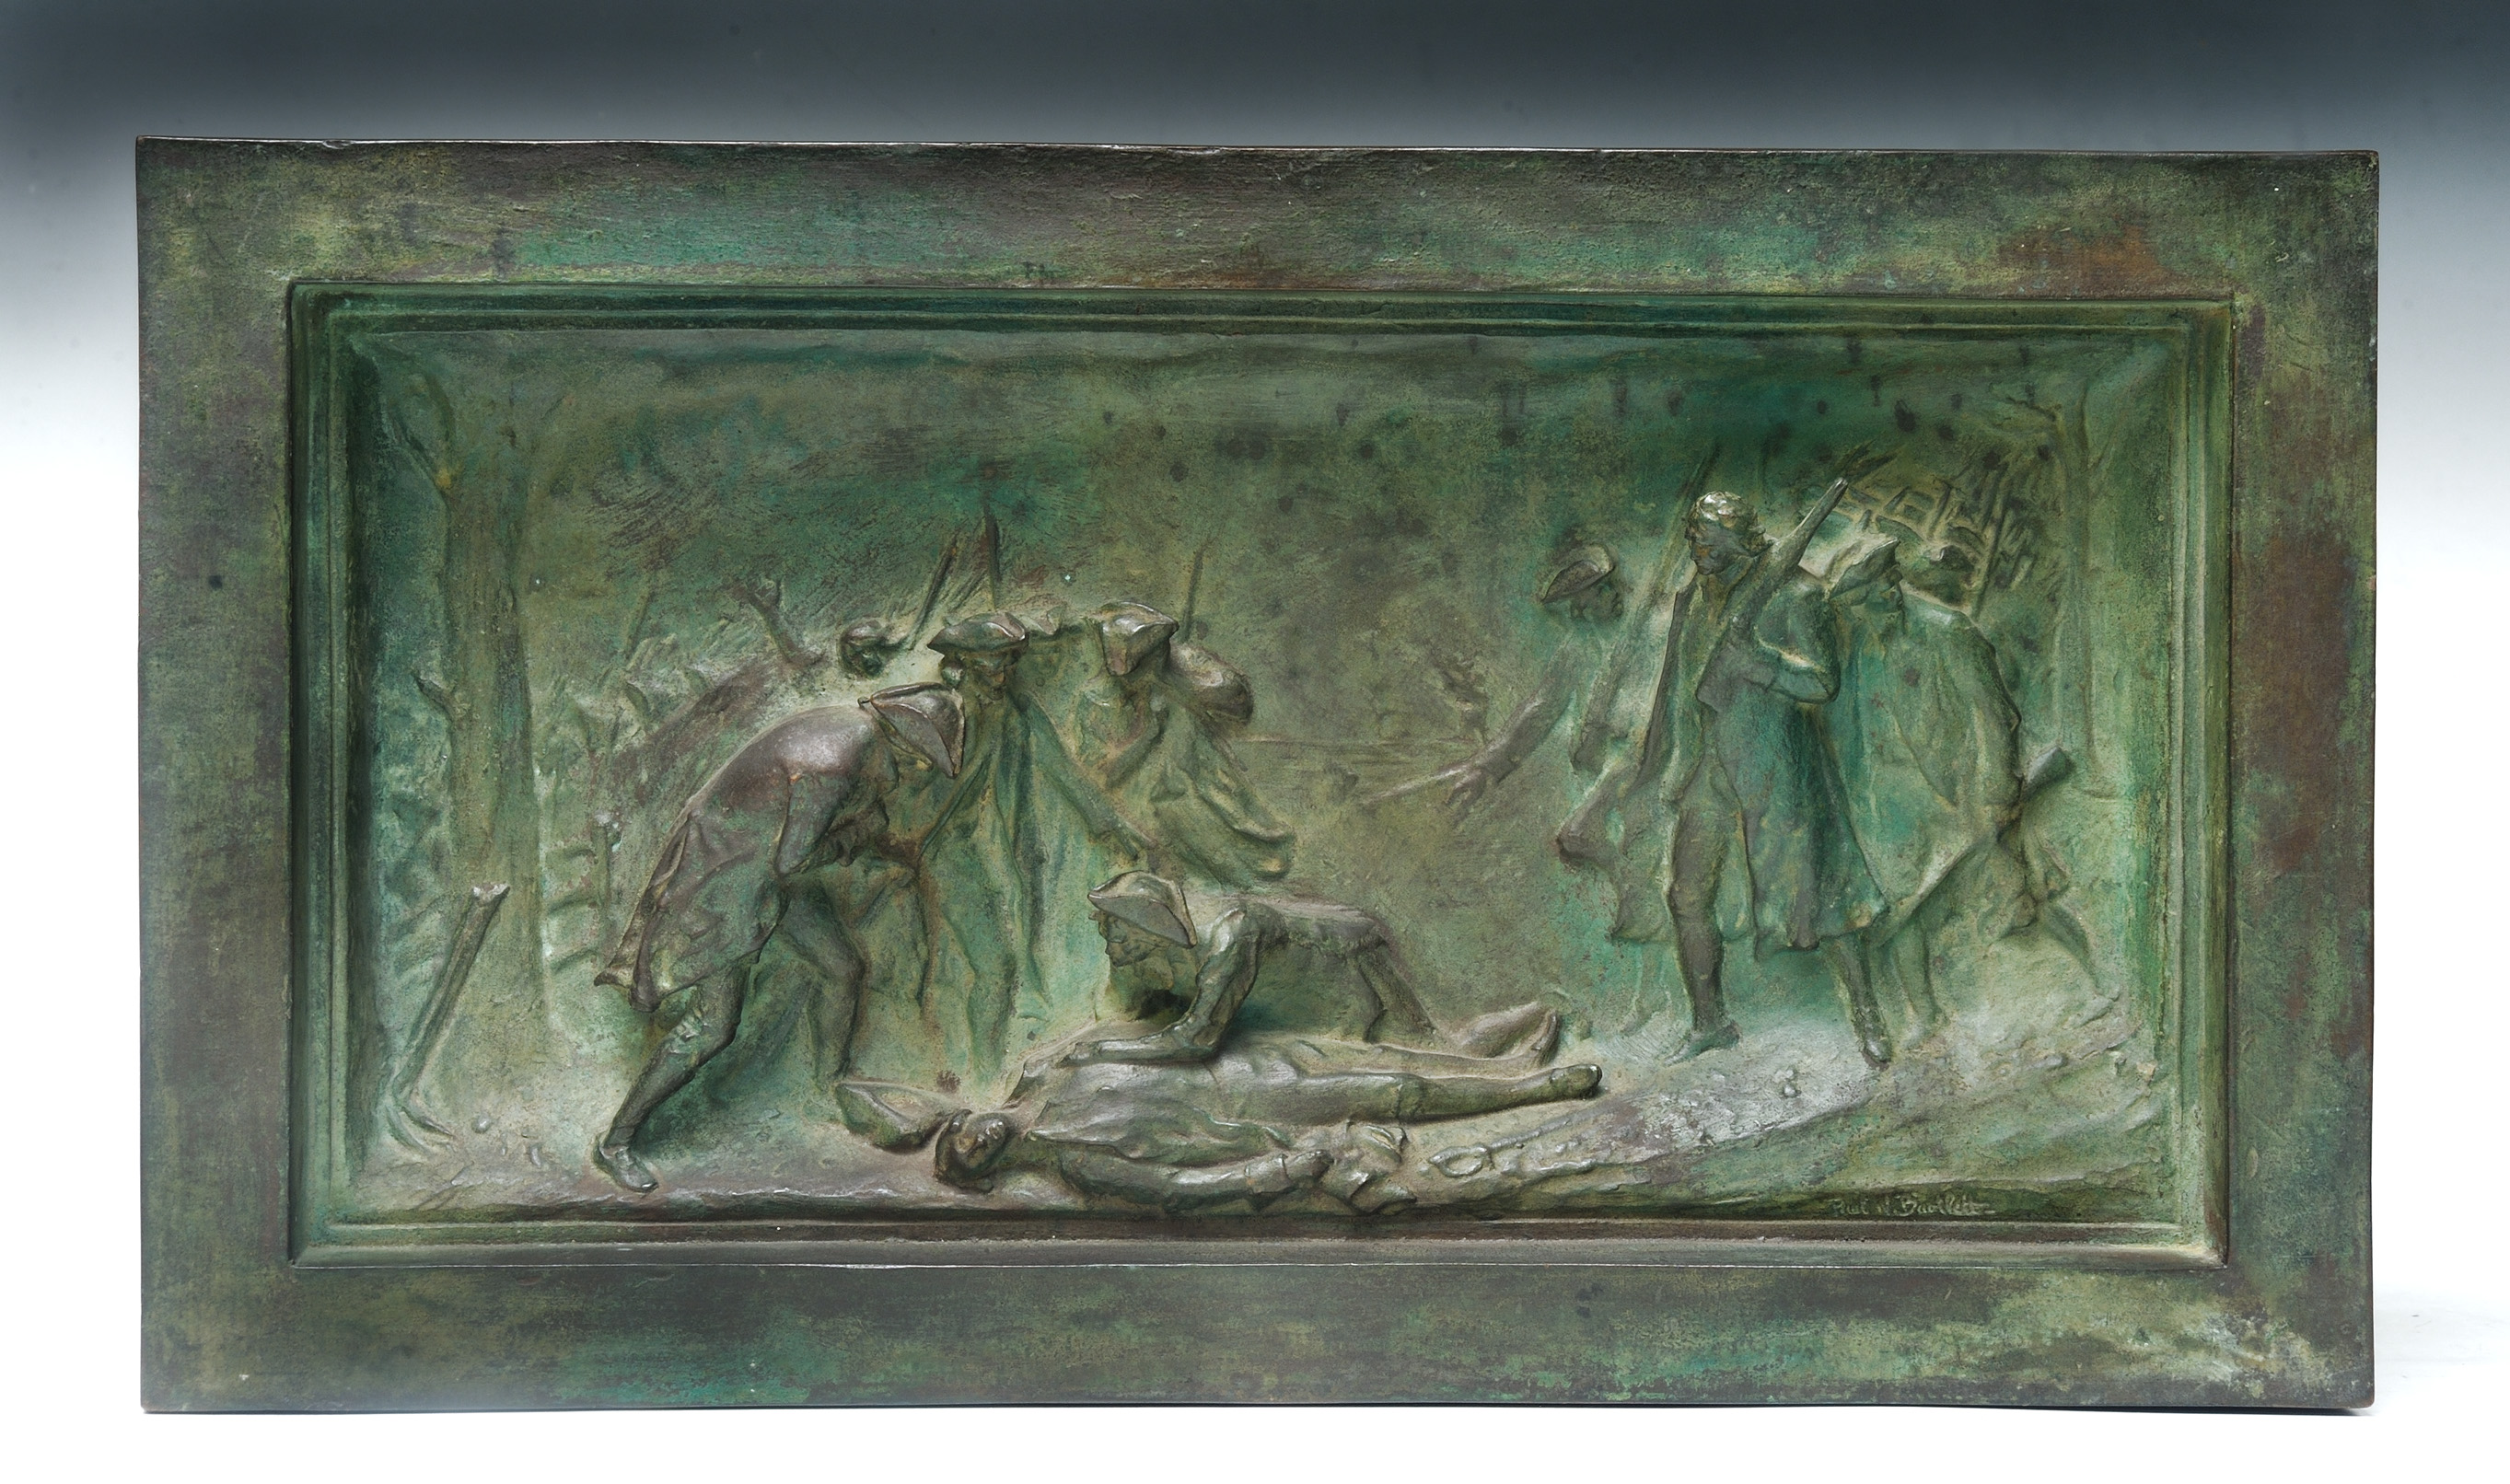 Death of Warren at Bunker Hill sculpture by Bartlett